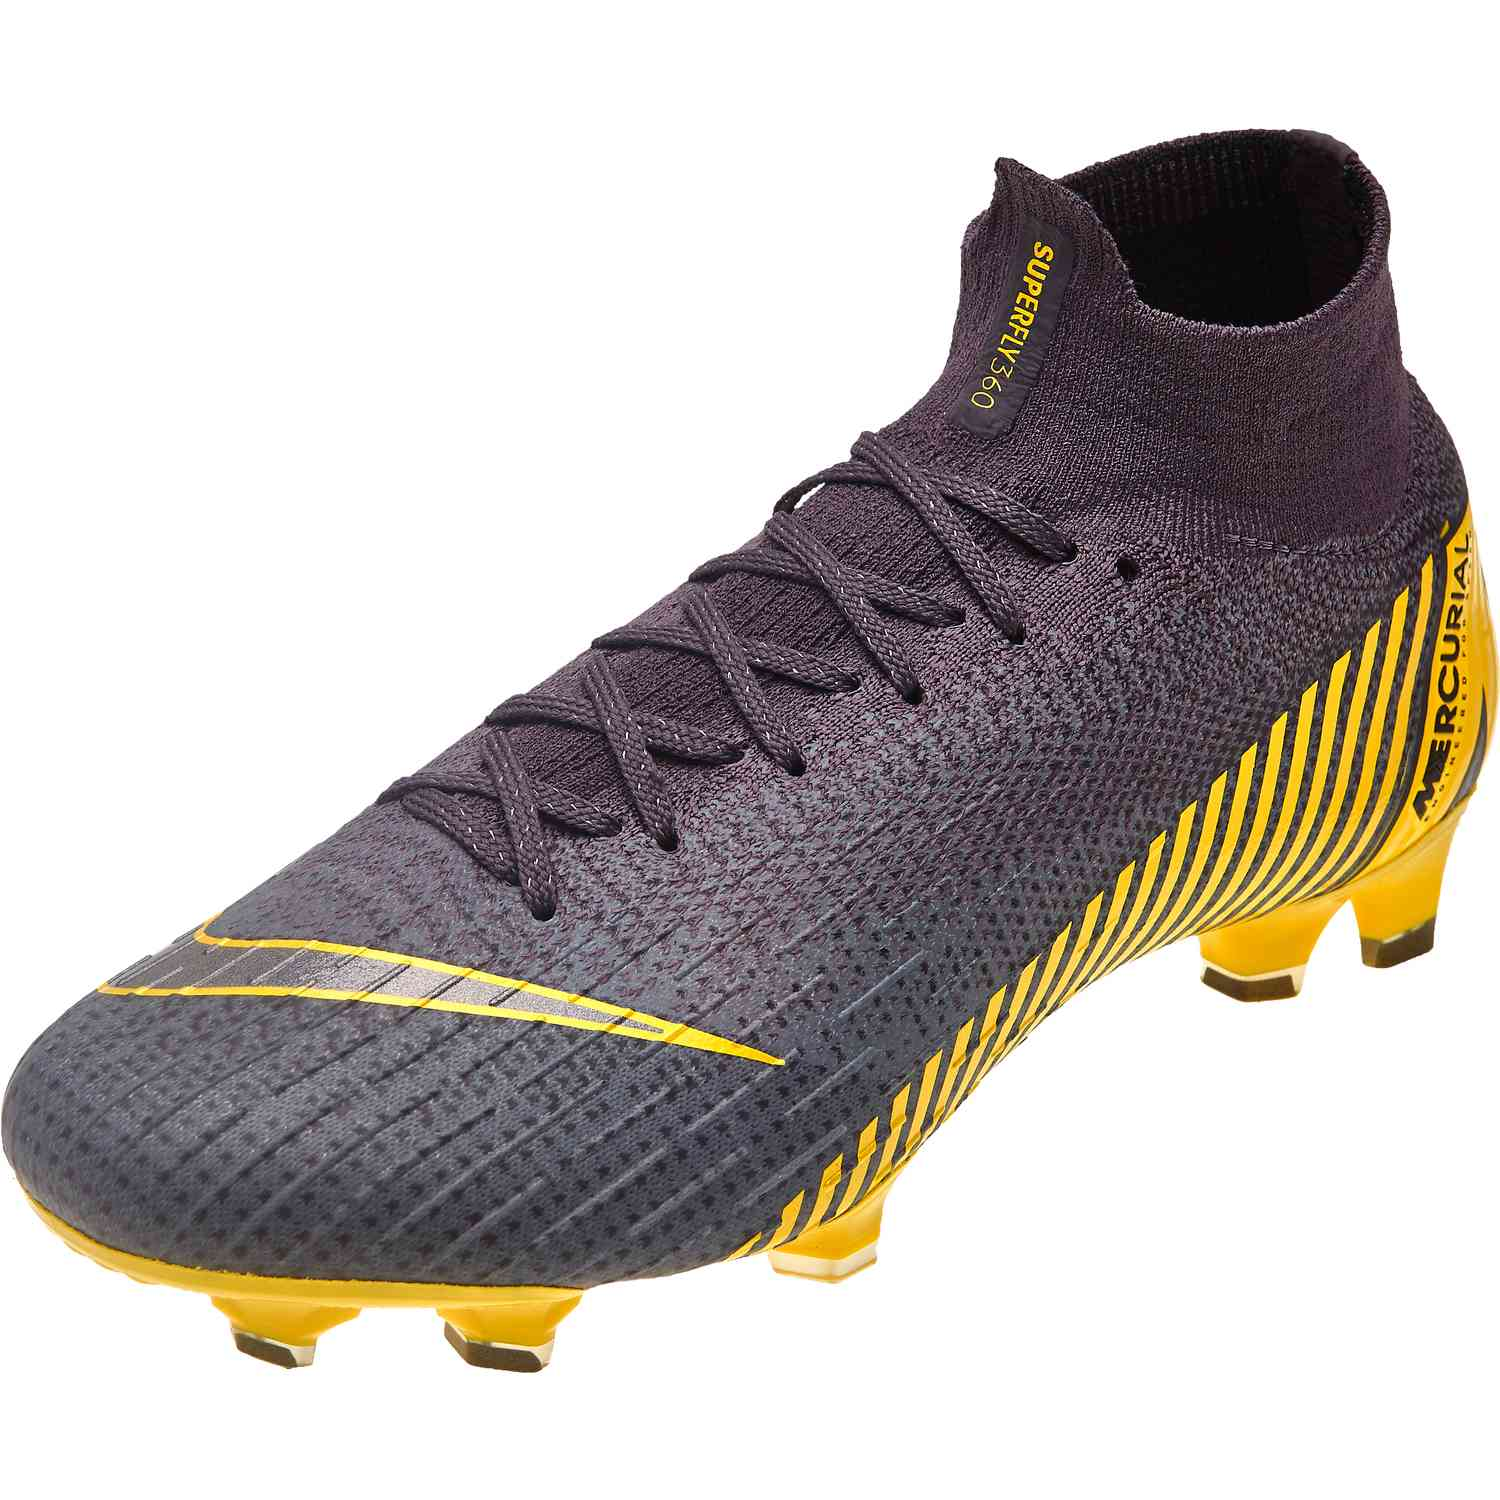 finest selection 50d15 49c79 Nike Mercurial Superfly 6 Elite FG – Game Over